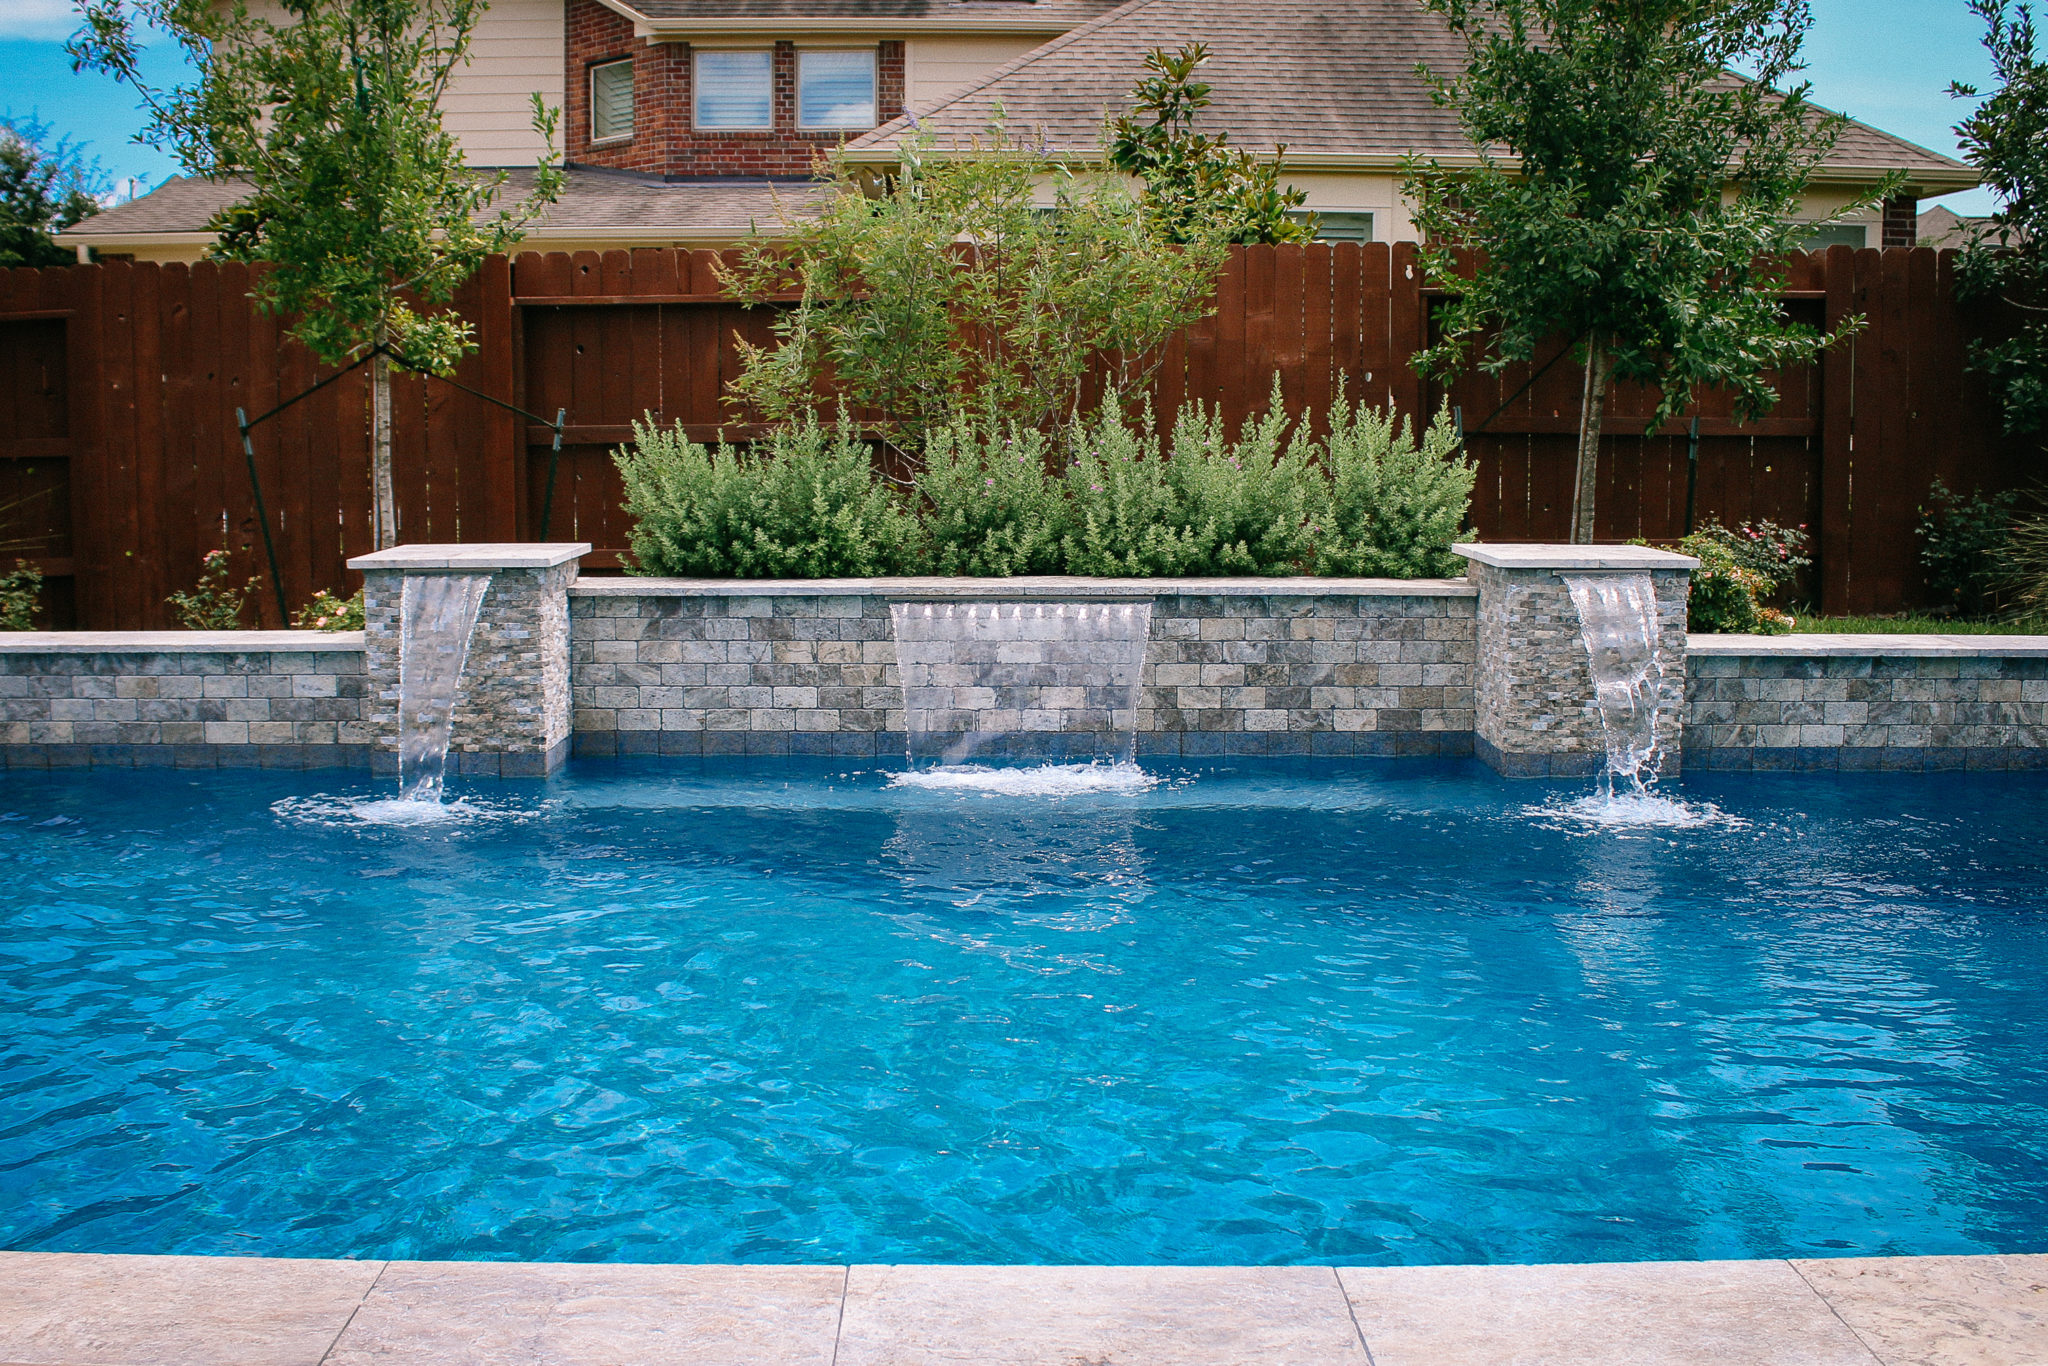 Inground Pool Cost >> Vacaville Pool Cost How Much Does An Inground Pool Cost In